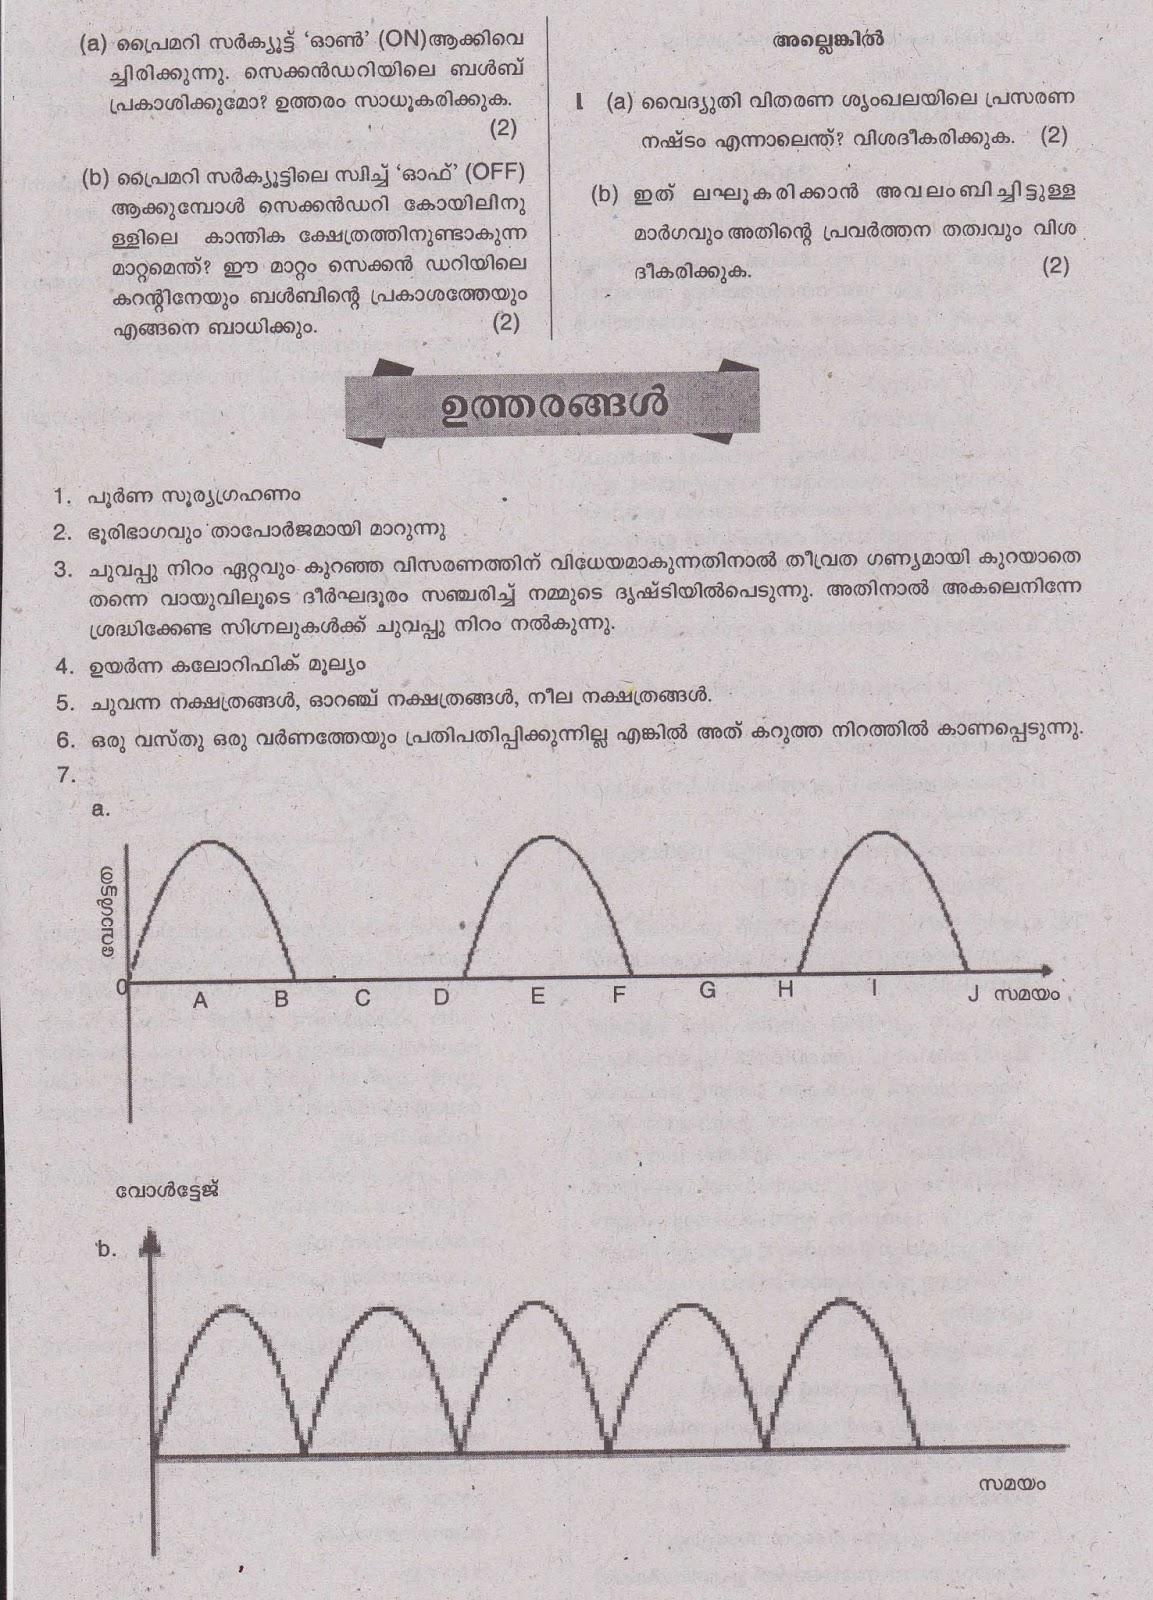 scert model question papers second term Hindi model question papers and answers - standard 10 (3 sets) scert question bank 2nd term std 8, 9, 10 2nd term exam questions from 14 districts.